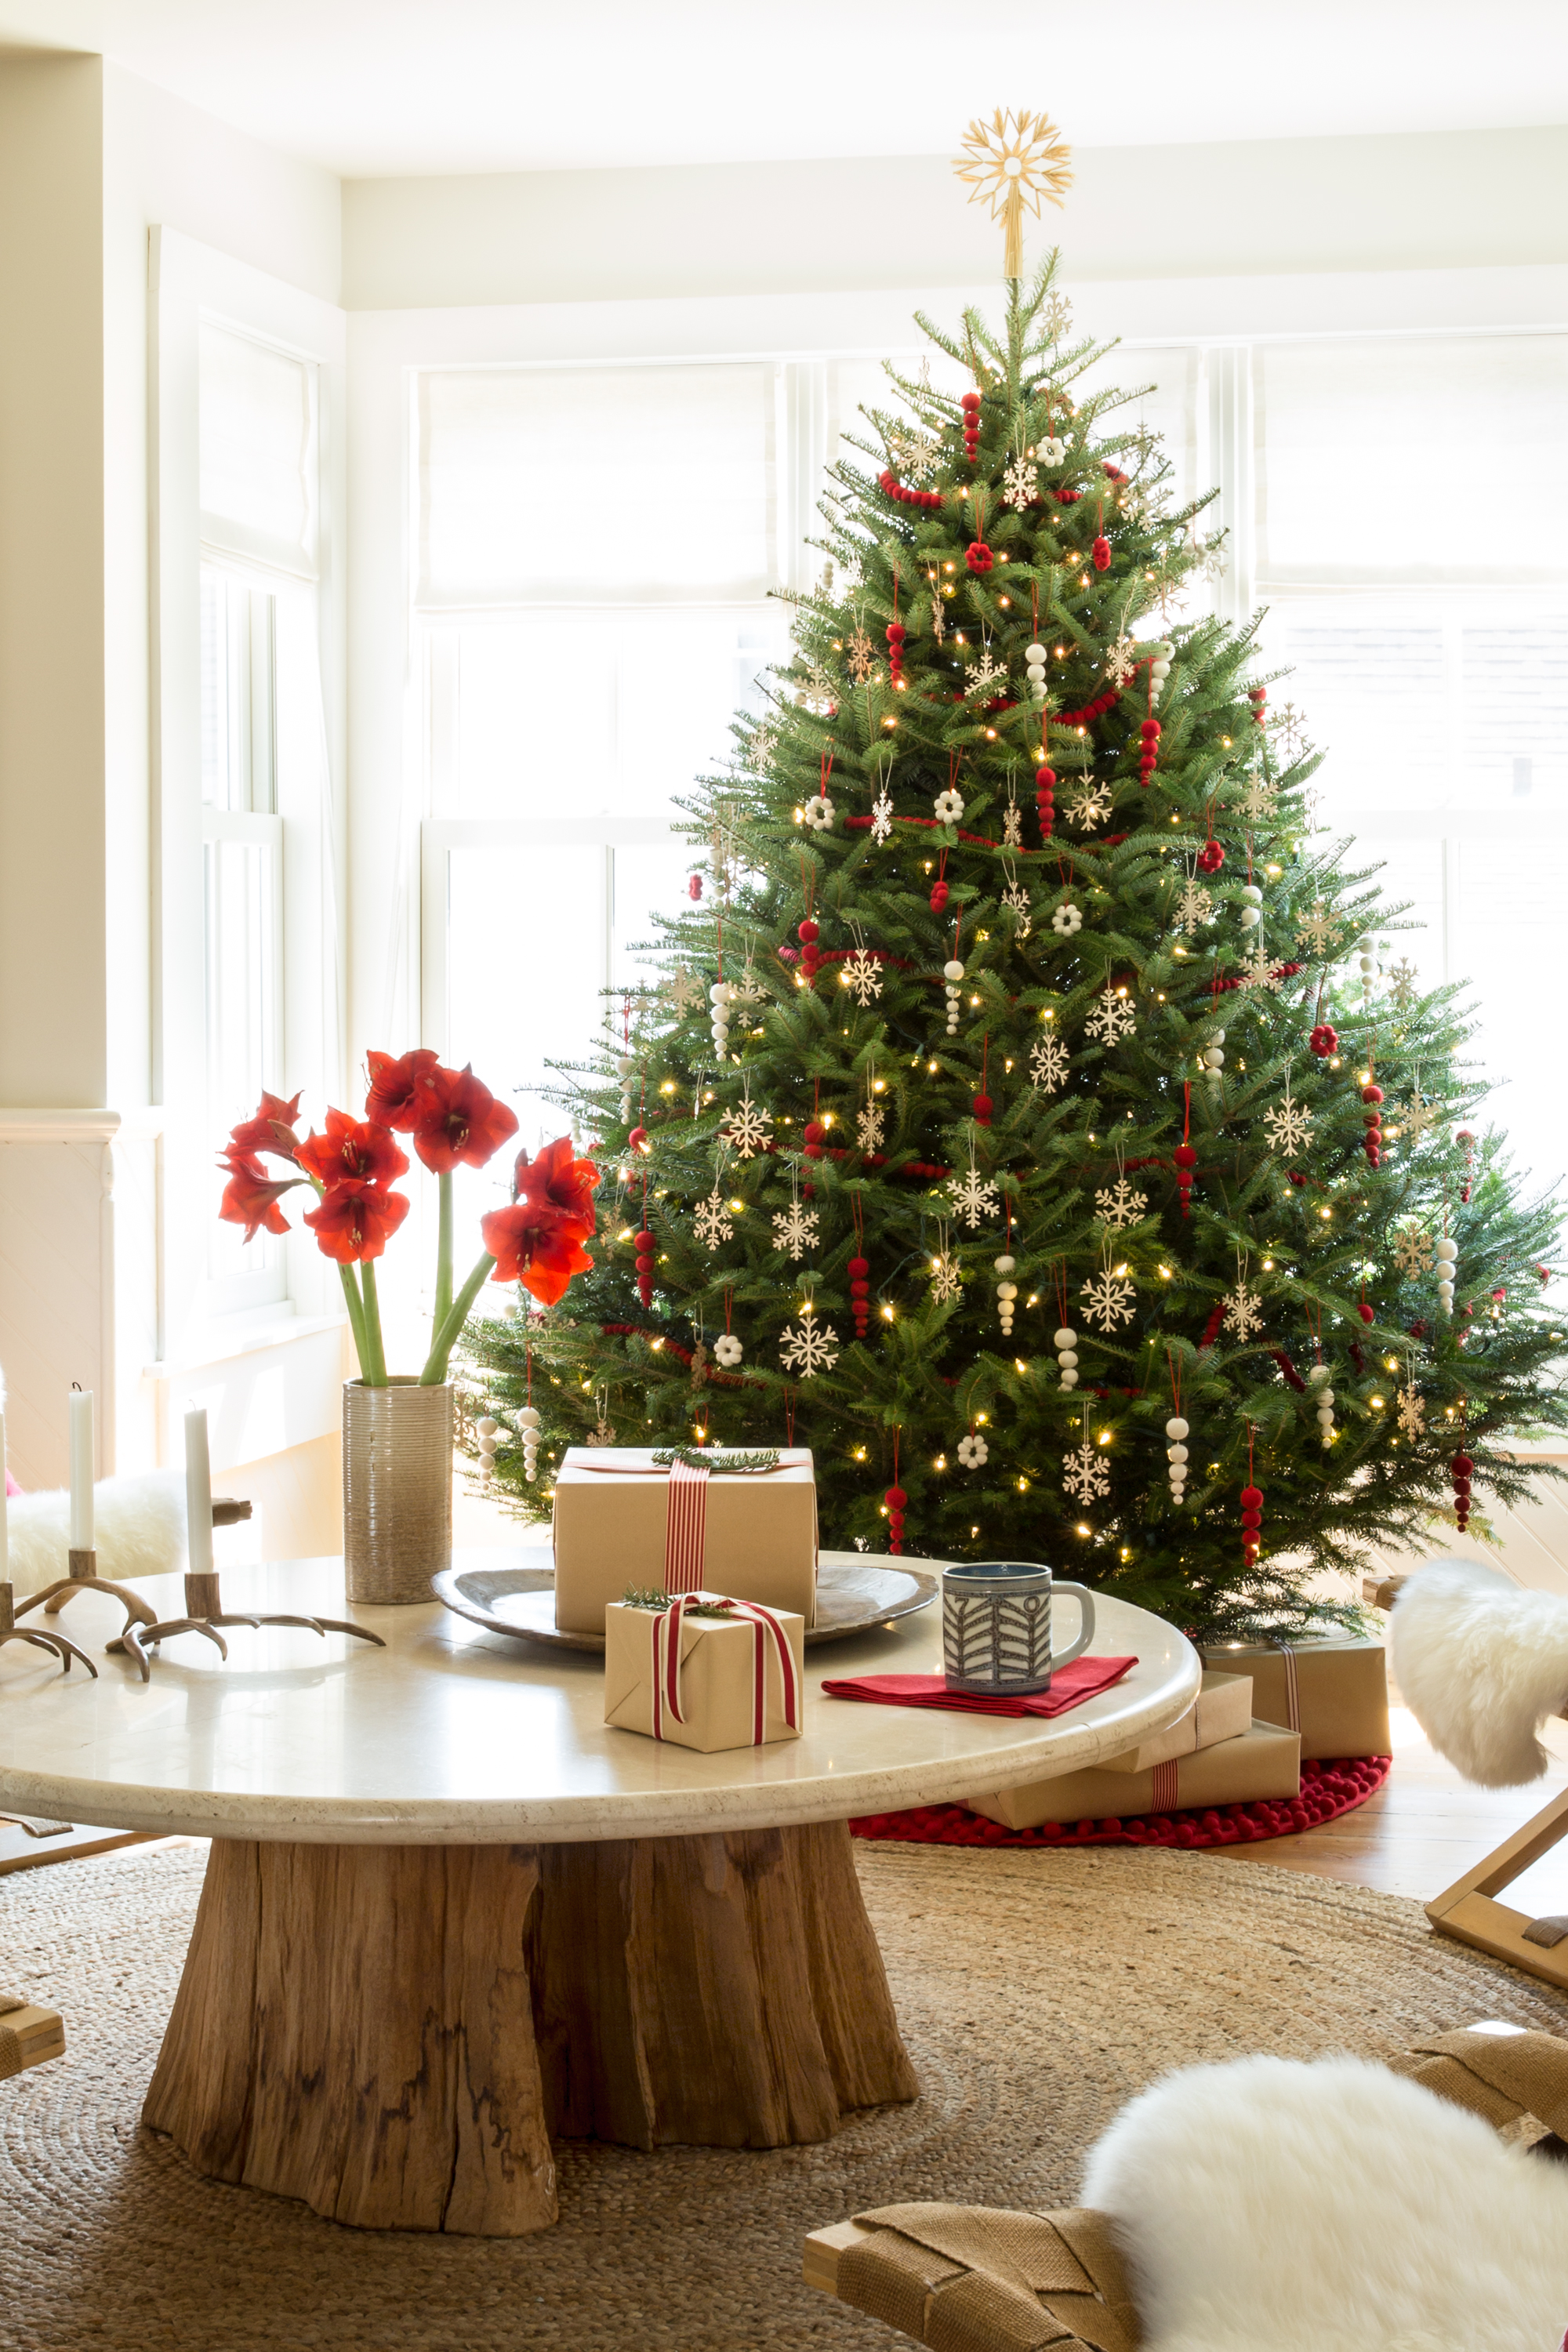 Christmas Decoration Images Delectable 30 Best Christmas Home Tours  Houses Decorated For Christmas Decorating Inspiration